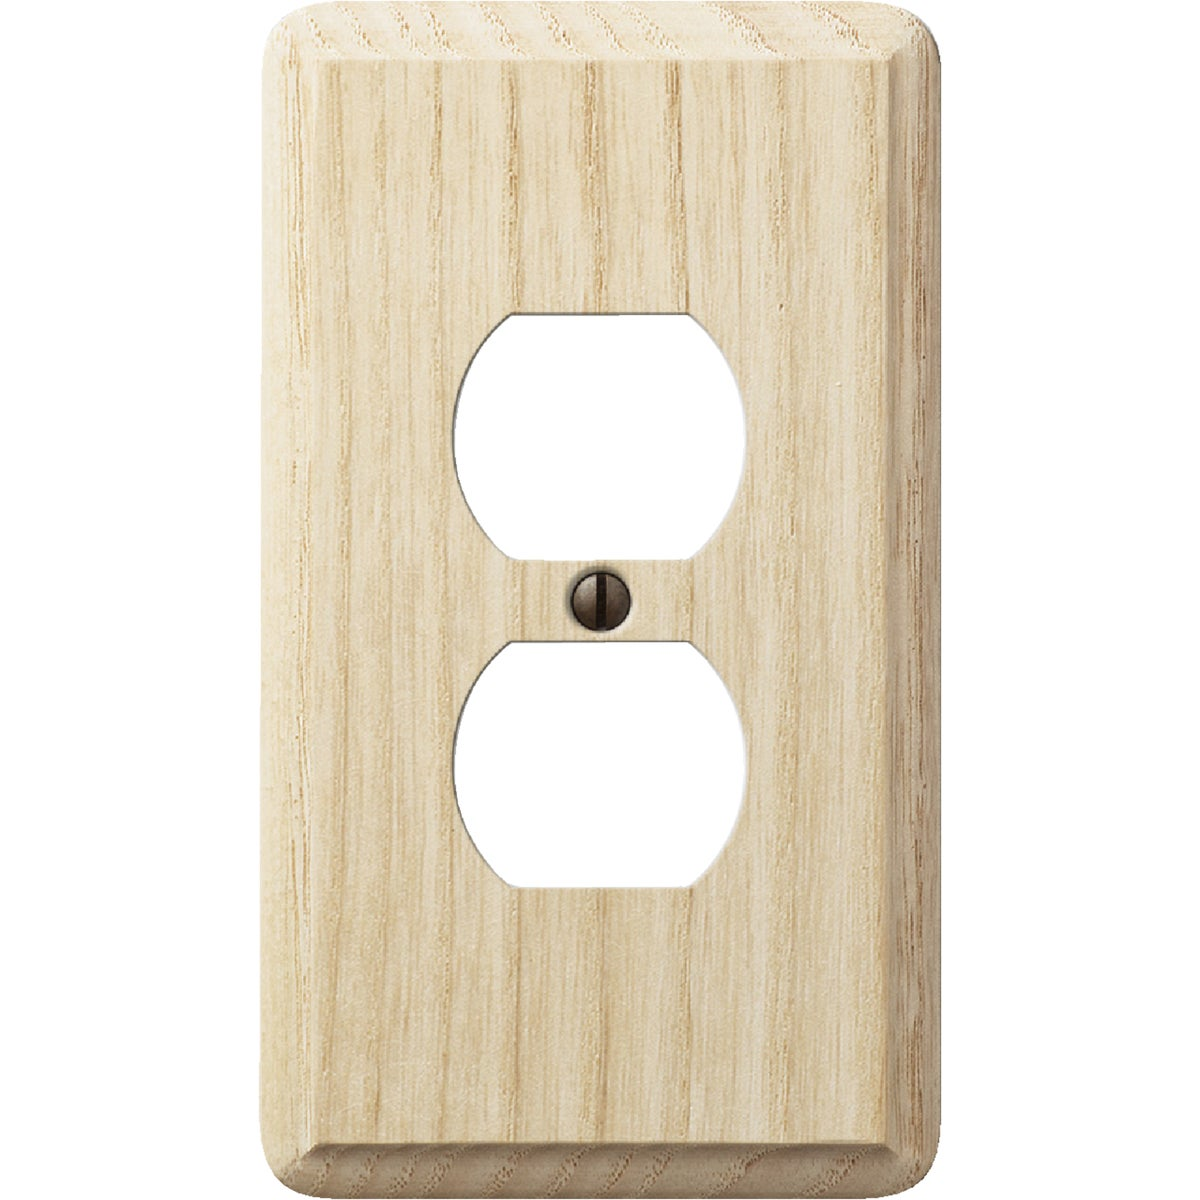 ASH OUTLET WALL PLATE - 408U by Jackson Deerfield Mf